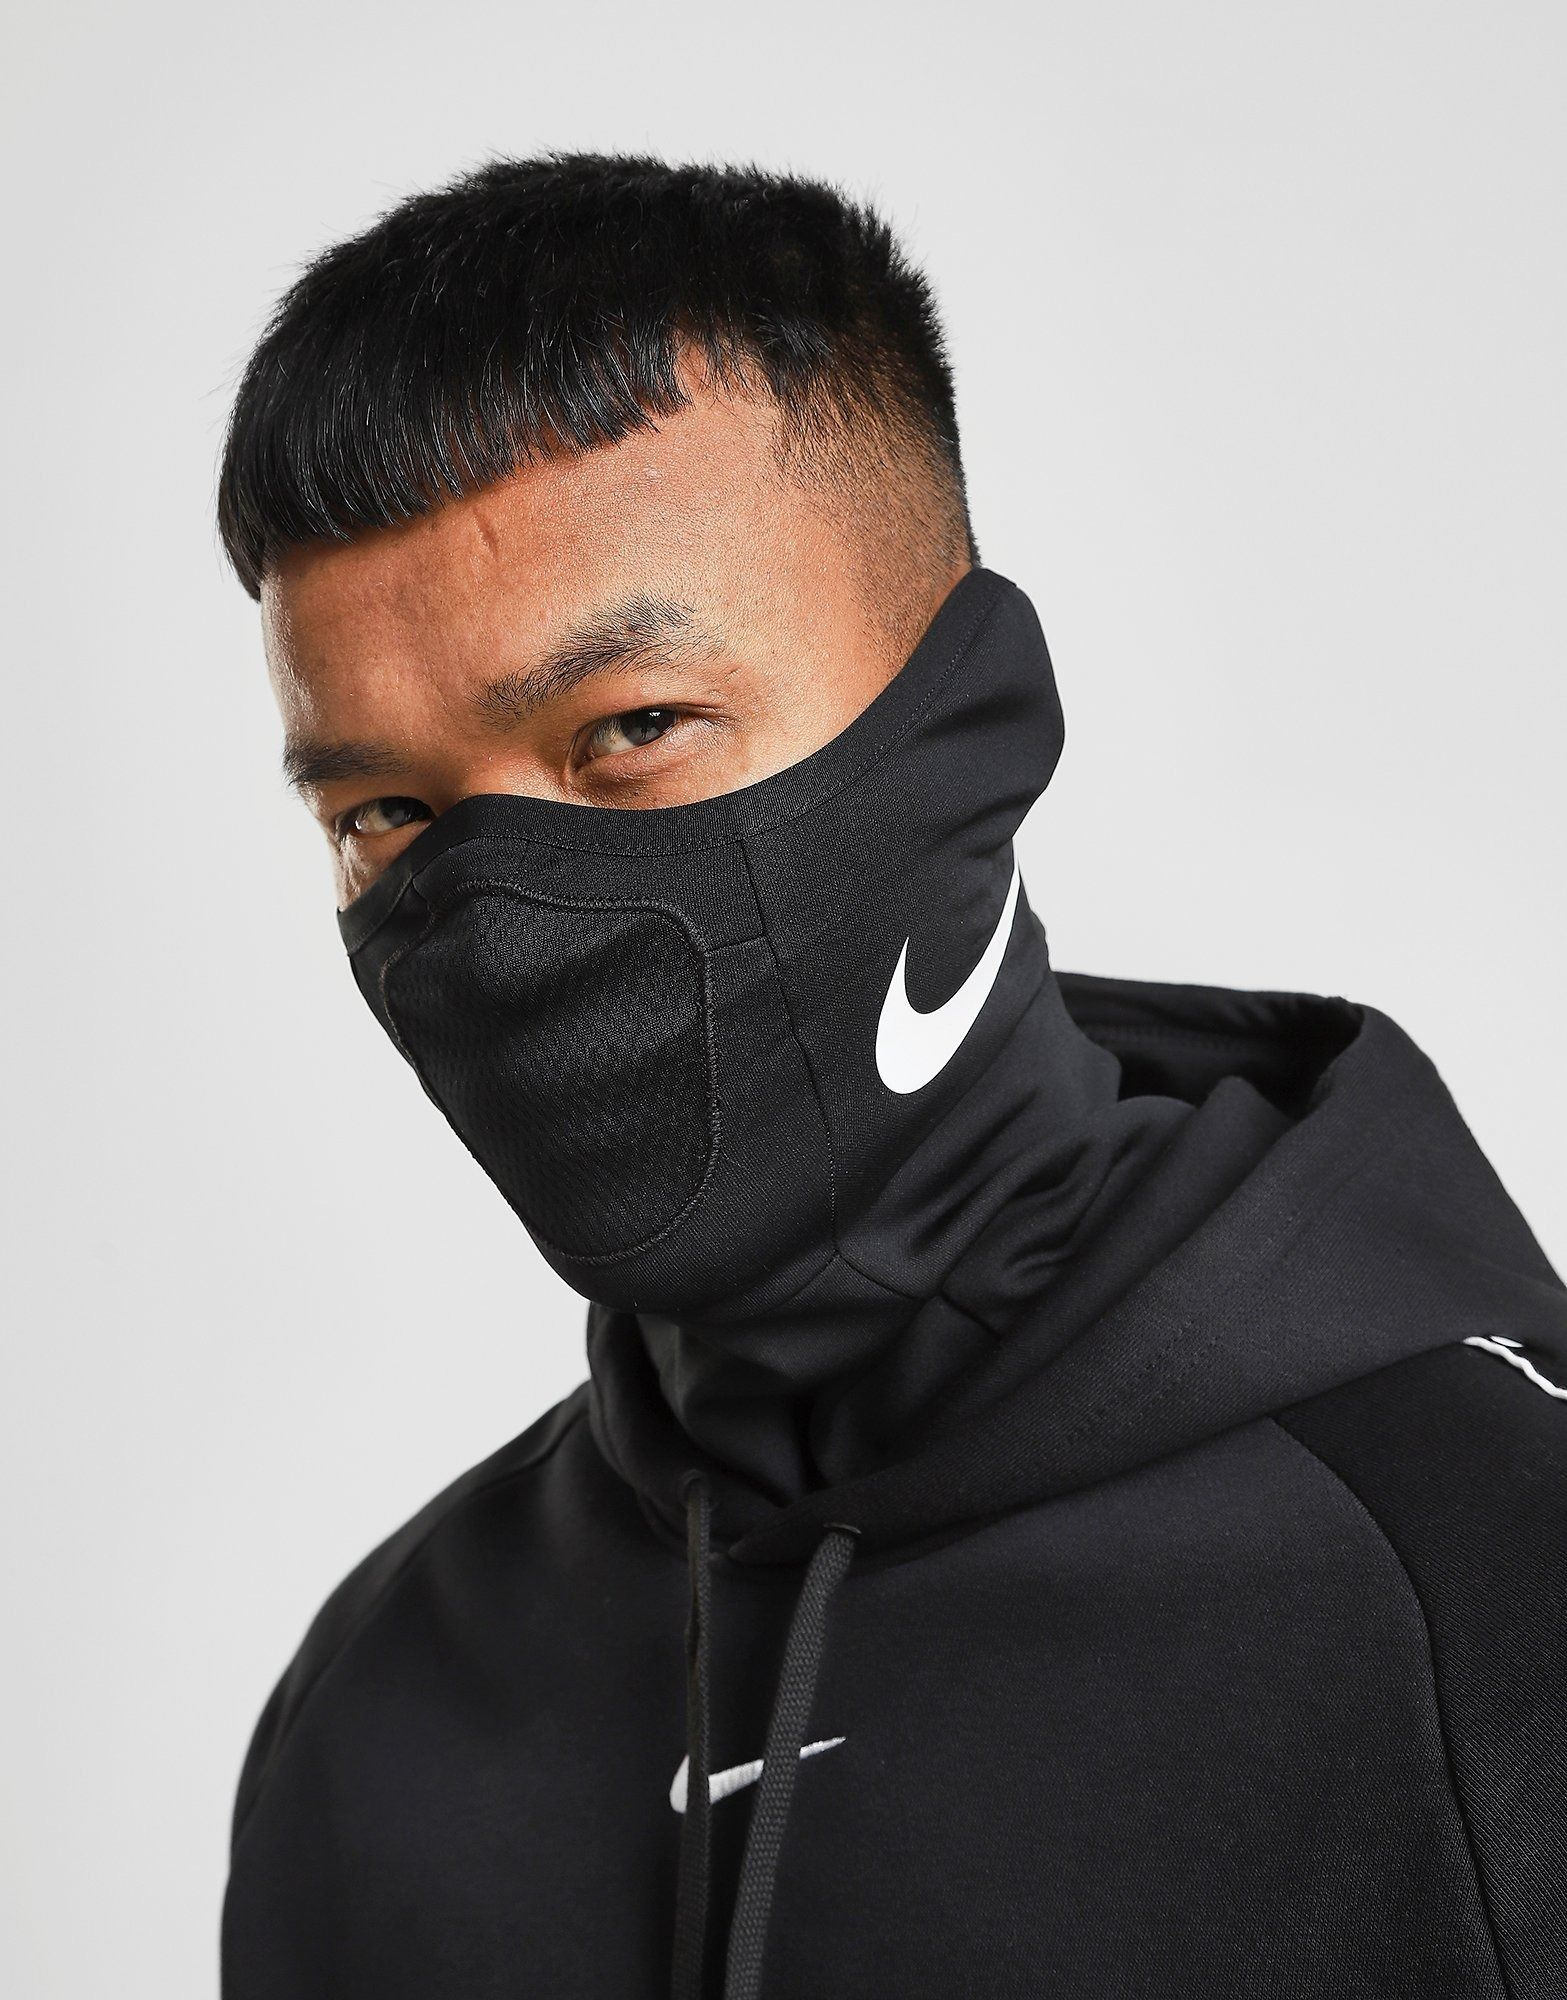 For extra coverage, layer up in this Strike Snood from